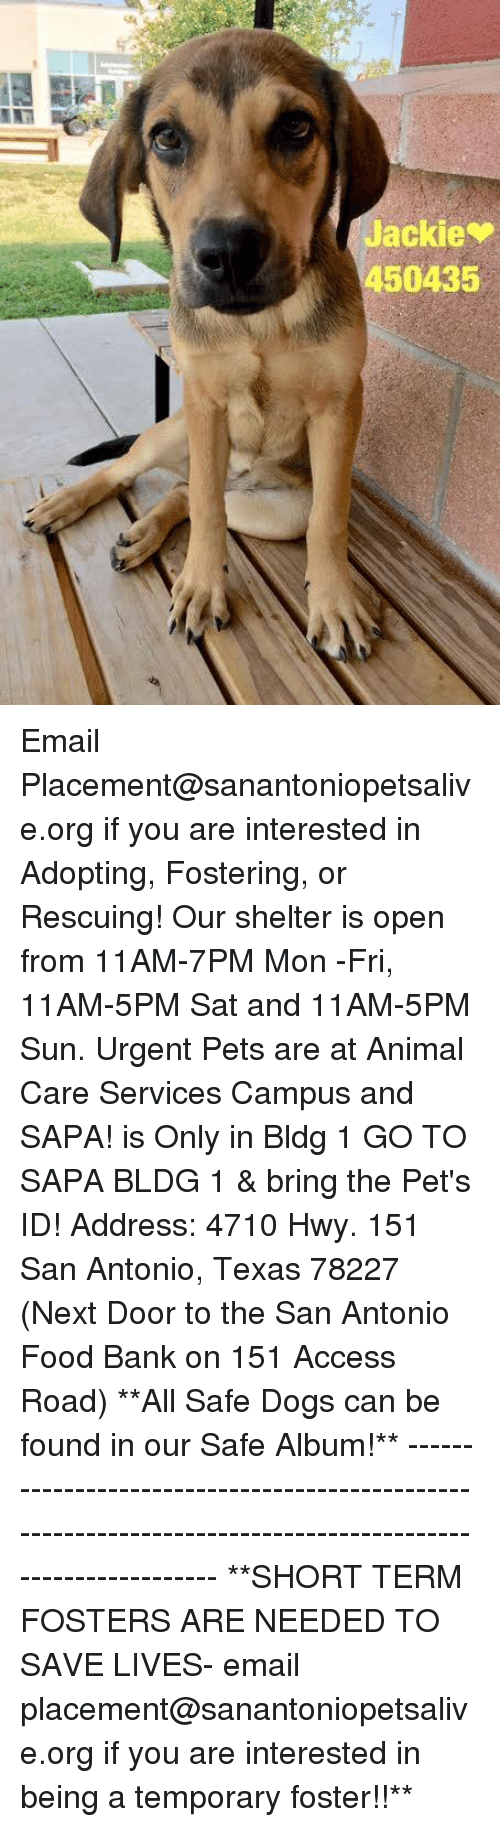 Dogs, Food, and Memes: Jackie  450435 Email Placement@sanantoniopetsalive.org if you are interested in Adopting, Fostering, or Rescuing!  Our shelter is open from 11AM-7PM Mon -Fri, 11AM-5PM Sat and 11AM-5PM Sun.  Urgent Pets are at Animal Care Services Campus and SAPA! is Only in Bldg 1 GO TO SAPA BLDG 1 & bring the Pet's ID! Address: 4710 Hwy. 151 San Antonio, Texas 78227 (Next Door to the San Antonio Food Bank on 151 Access Road)  **All Safe Dogs can be found in our Safe Album!** ---------------------------------------------------------------------------------------------------------- **SHORT TERM FOSTERS ARE NEEDED TO SAVE LIVES- email placement@sanantoniopetsalive.org if you are interested in being a temporary foster!!**